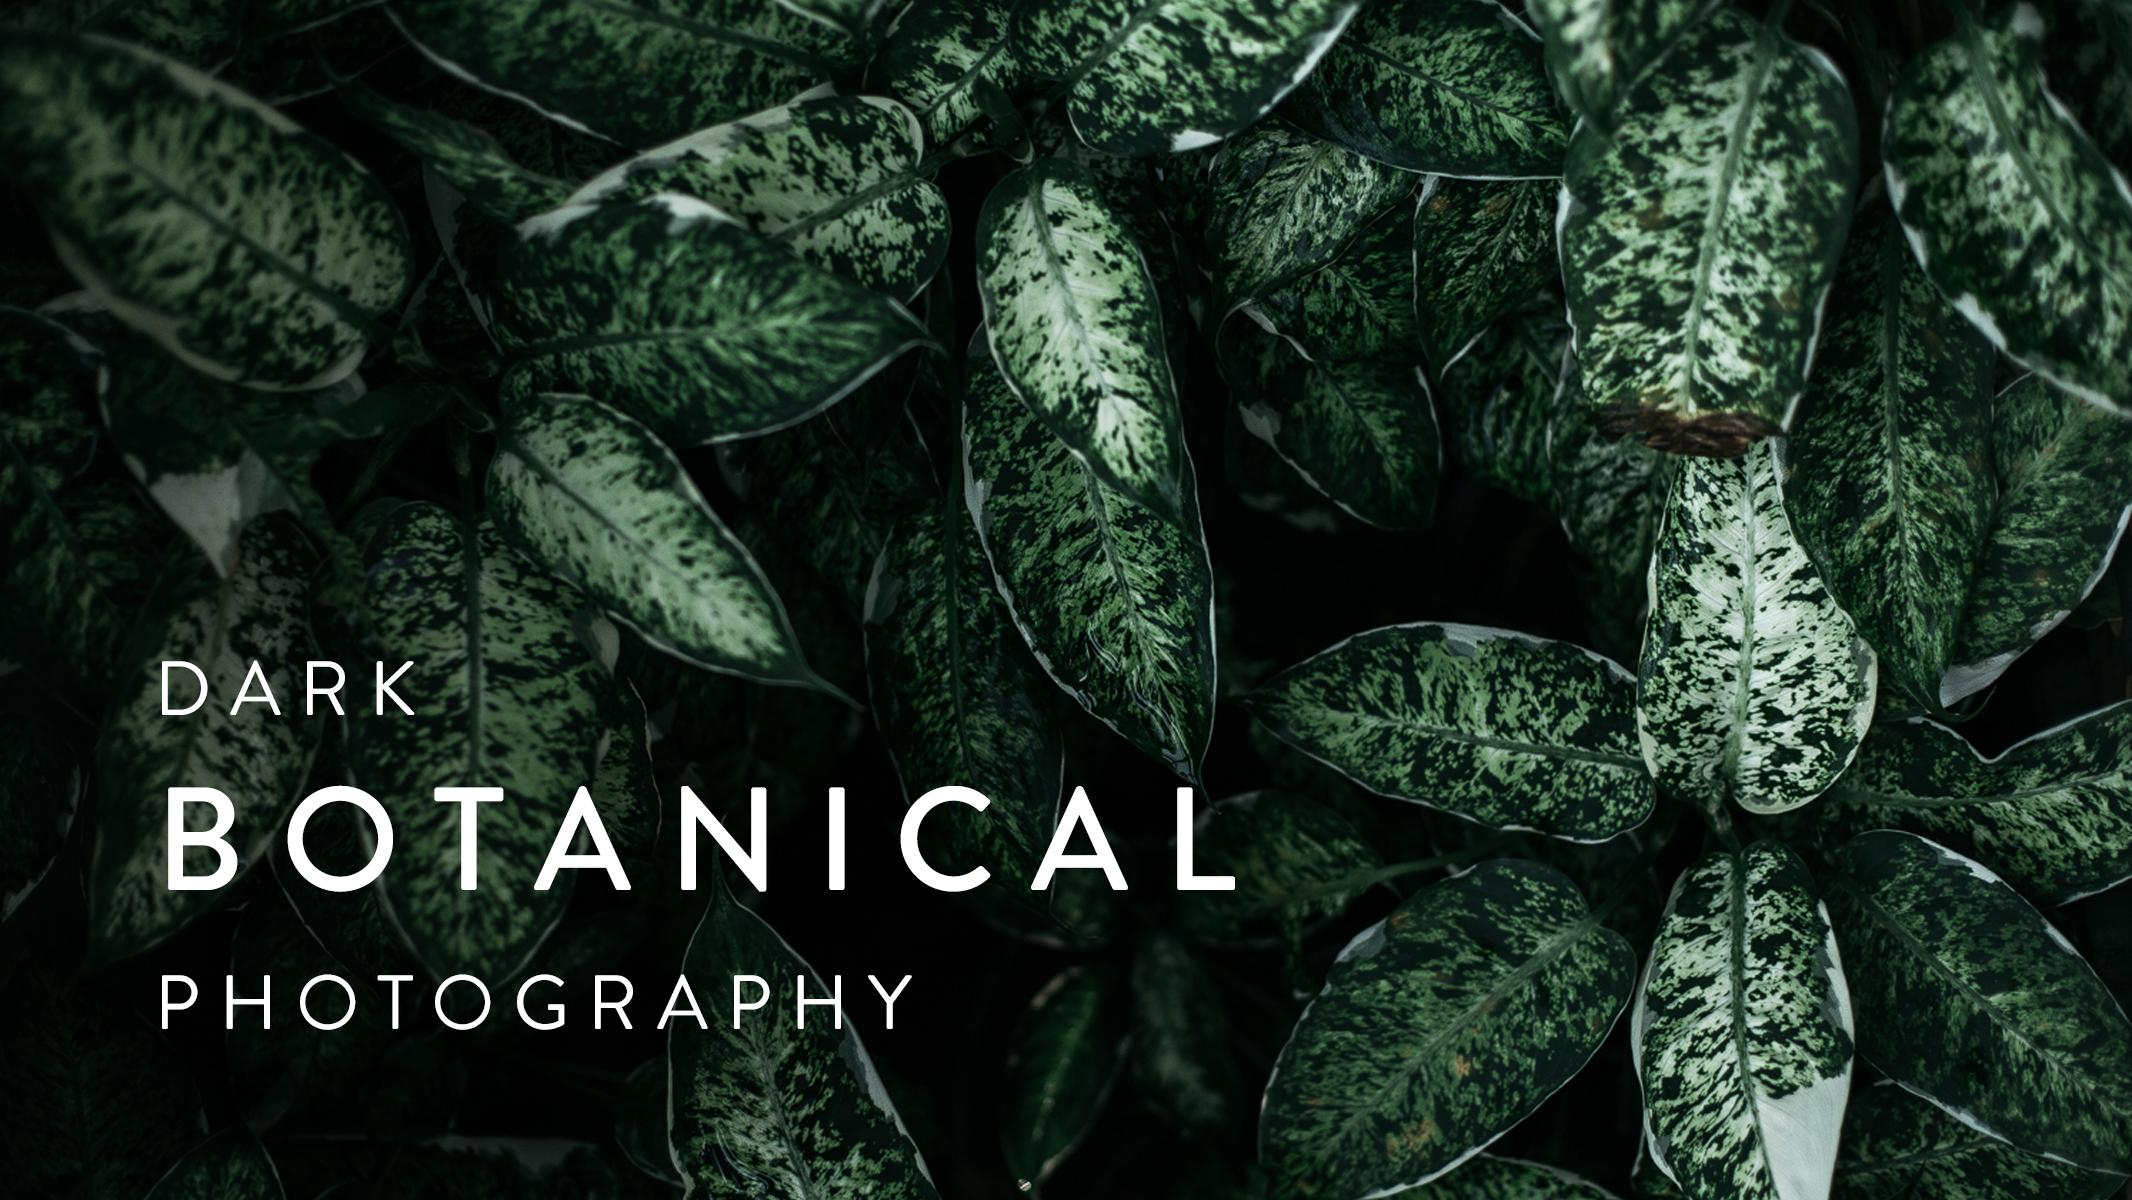 Dark Botanical Photography: Capture Beautifully Moody Images of Plants